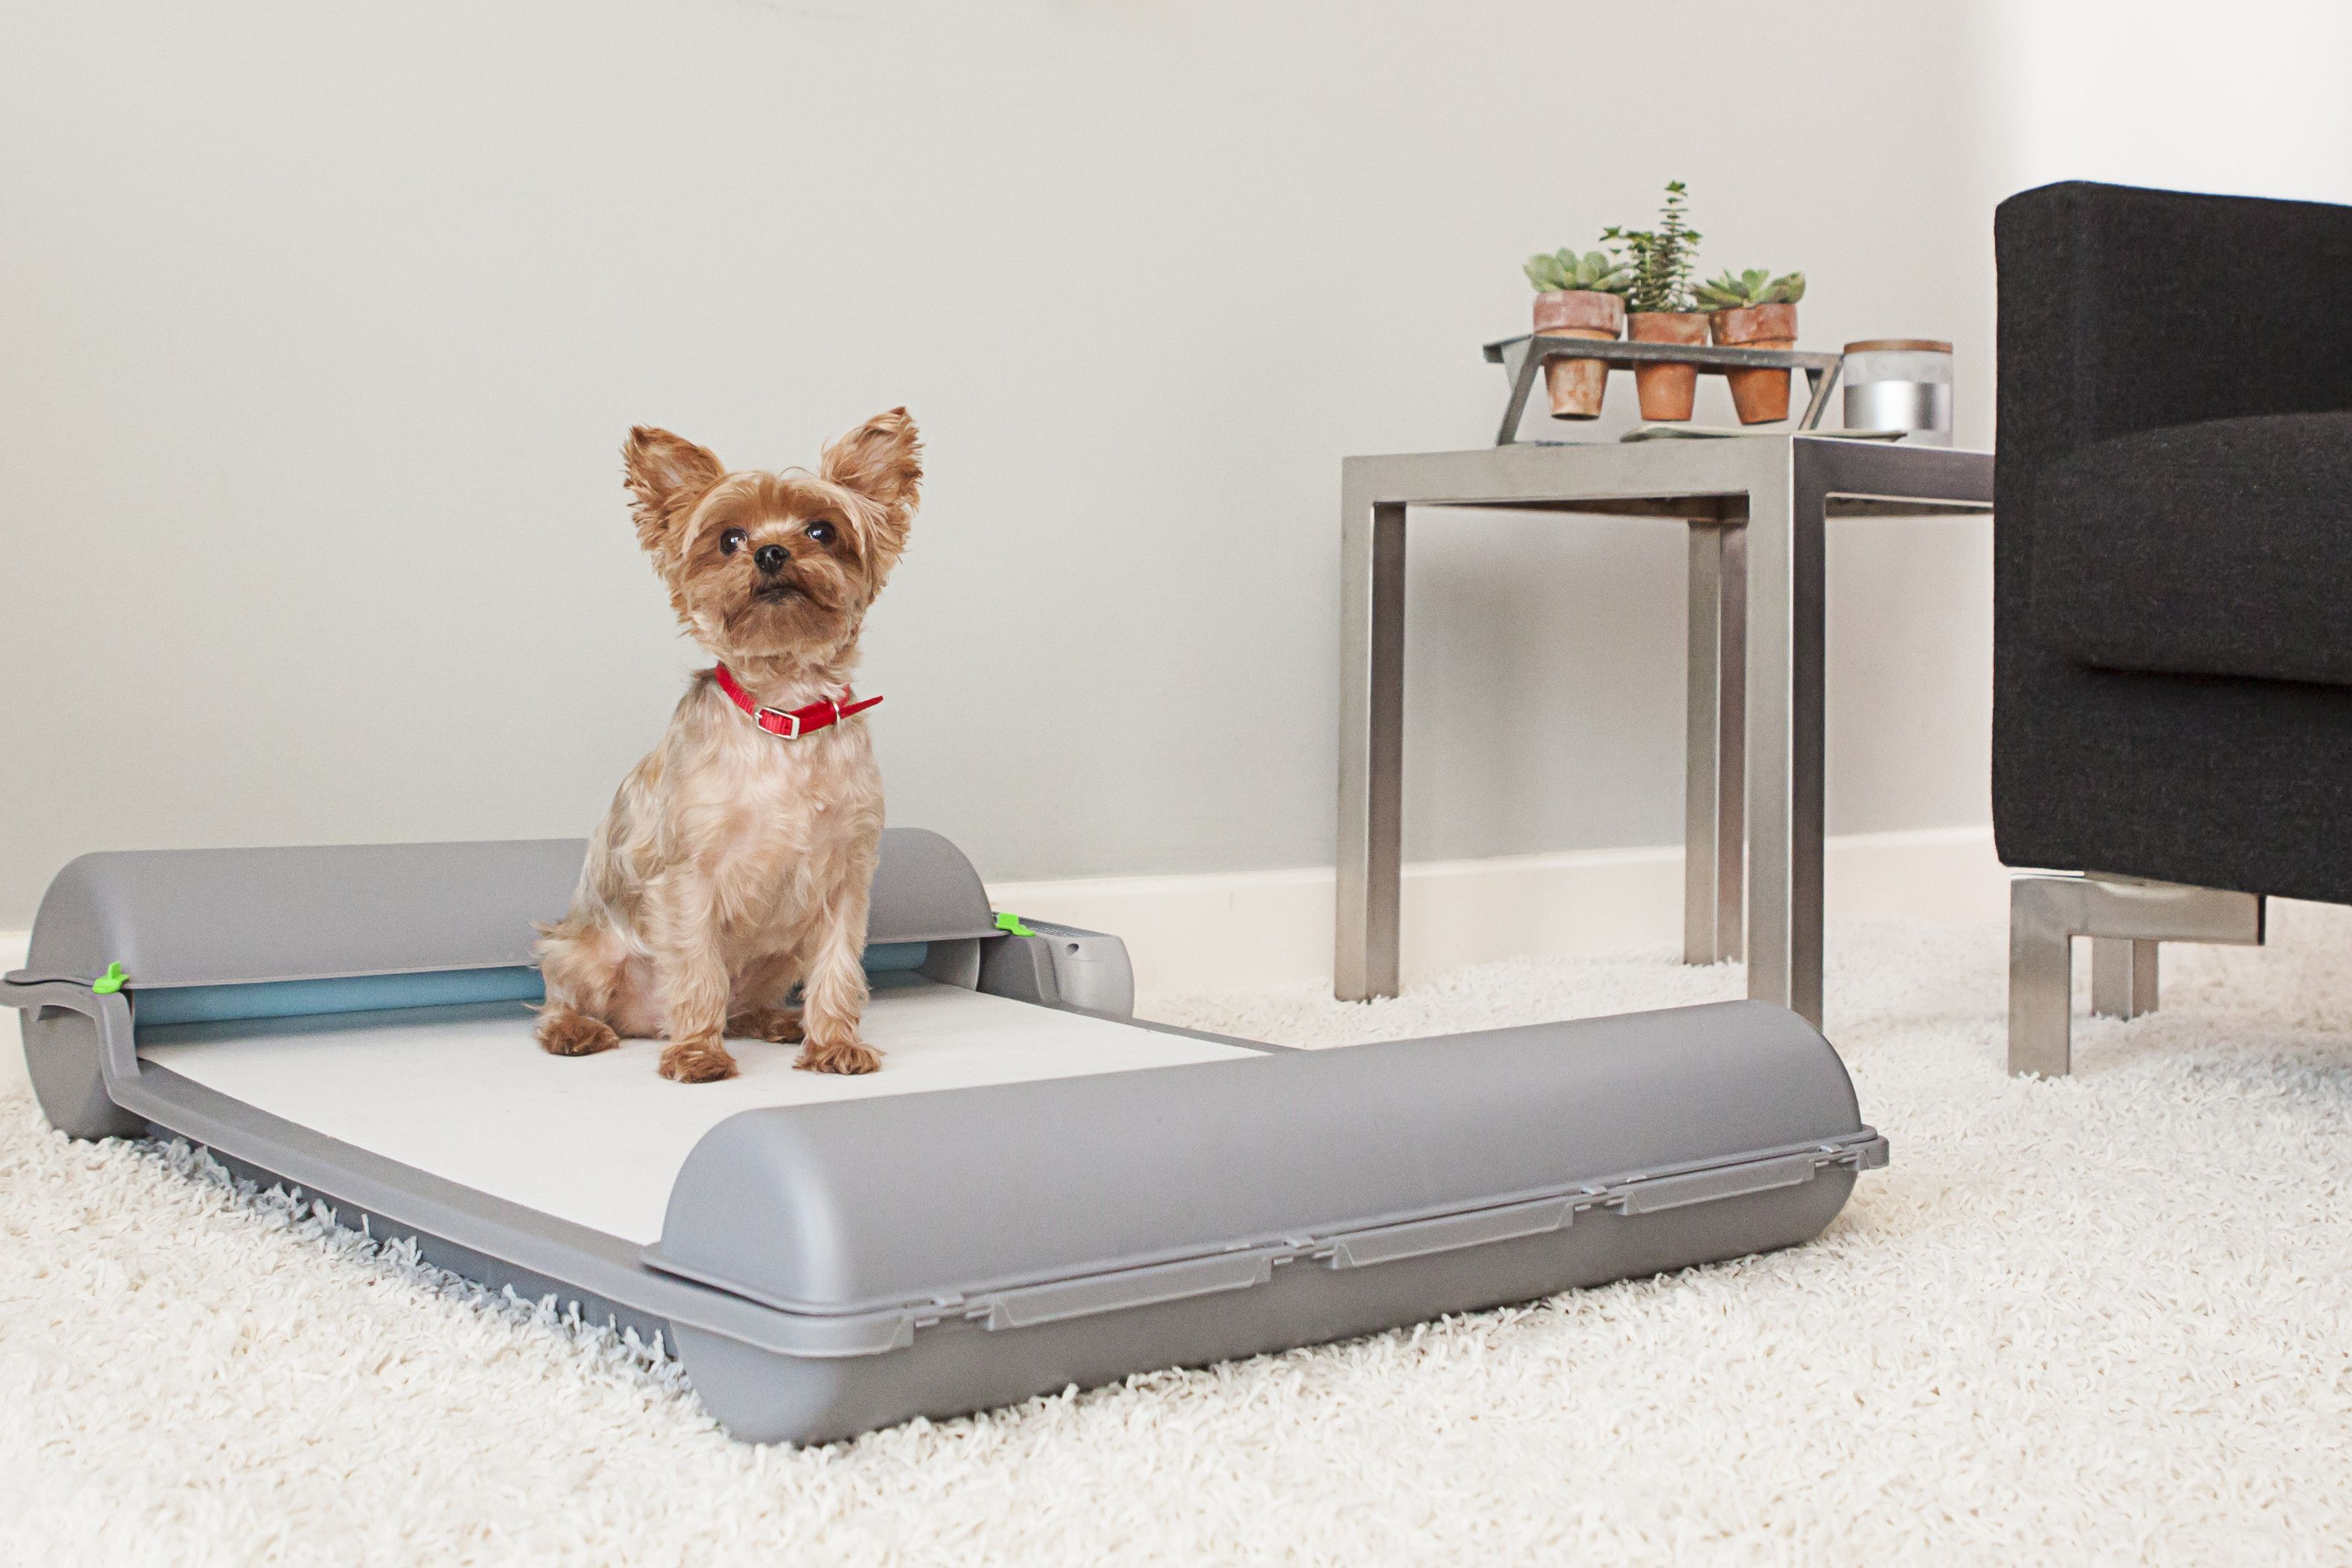 Brilliantpad Is A Smart Dog Toilet That Just May Improve Your Relationship With Fluffy Indoor Dog Potty Dog Toilet Dog Potty